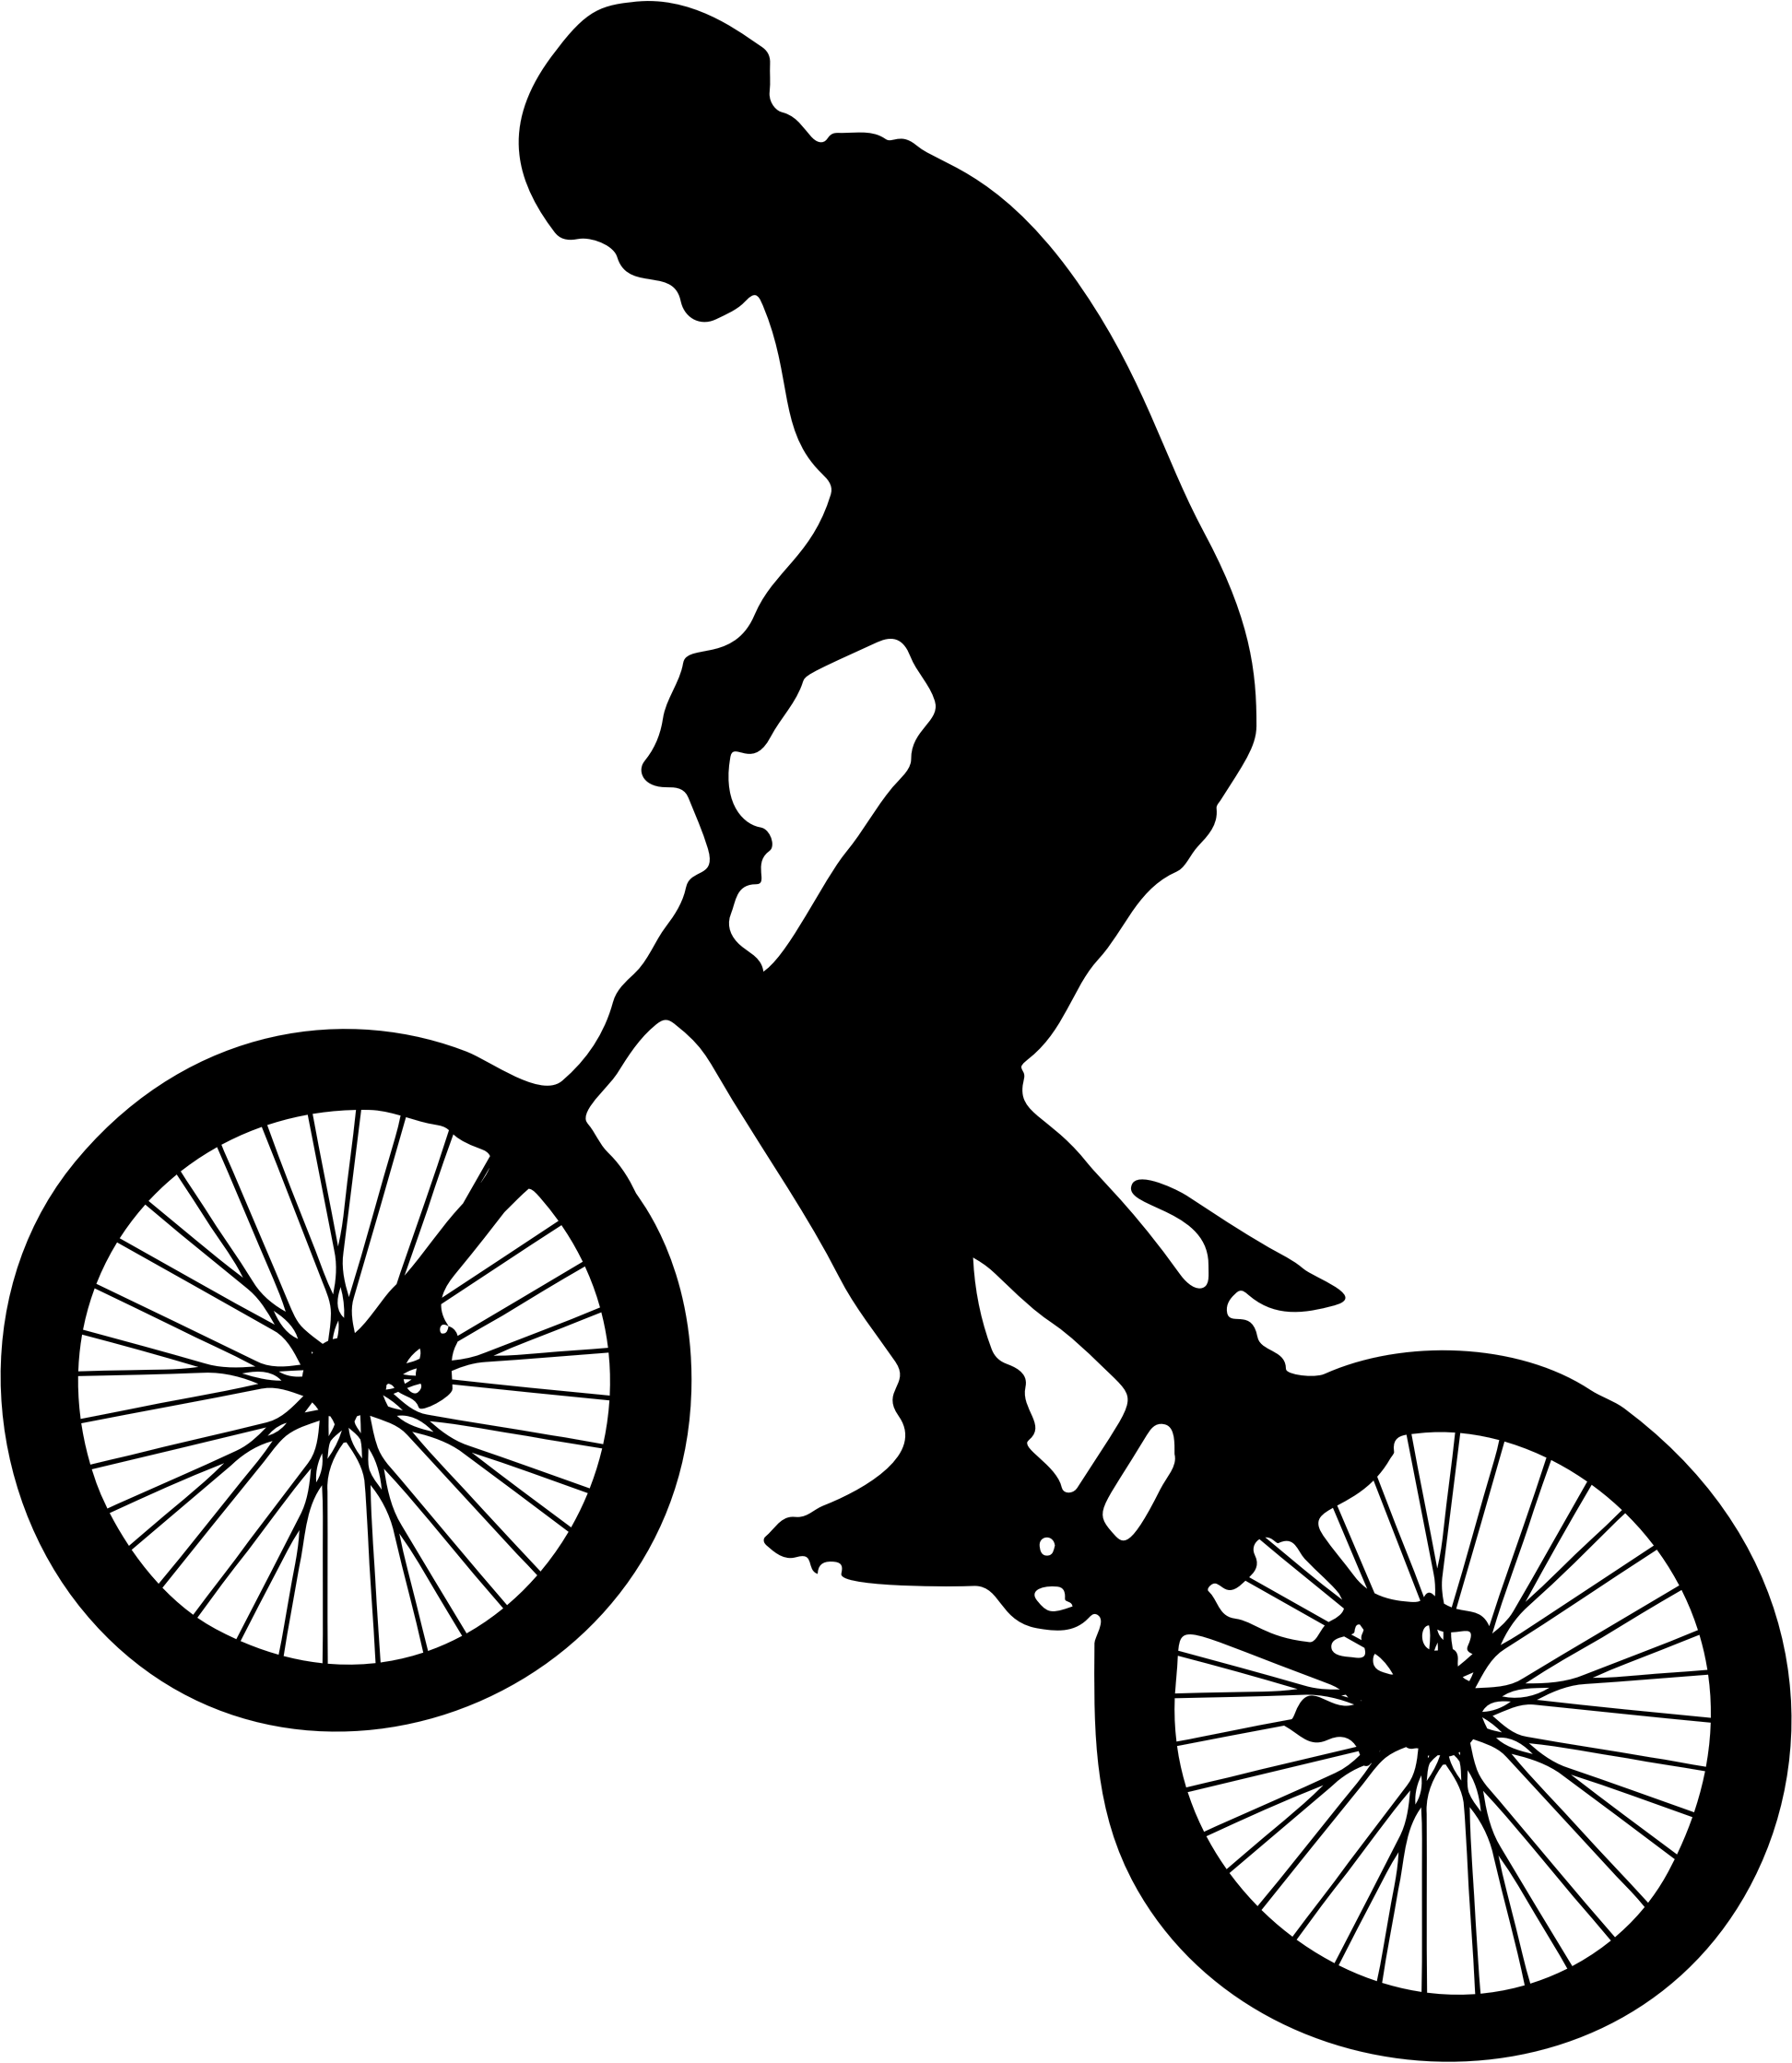 Man on bike big. Cycling clipart human silhouette image freeuse download